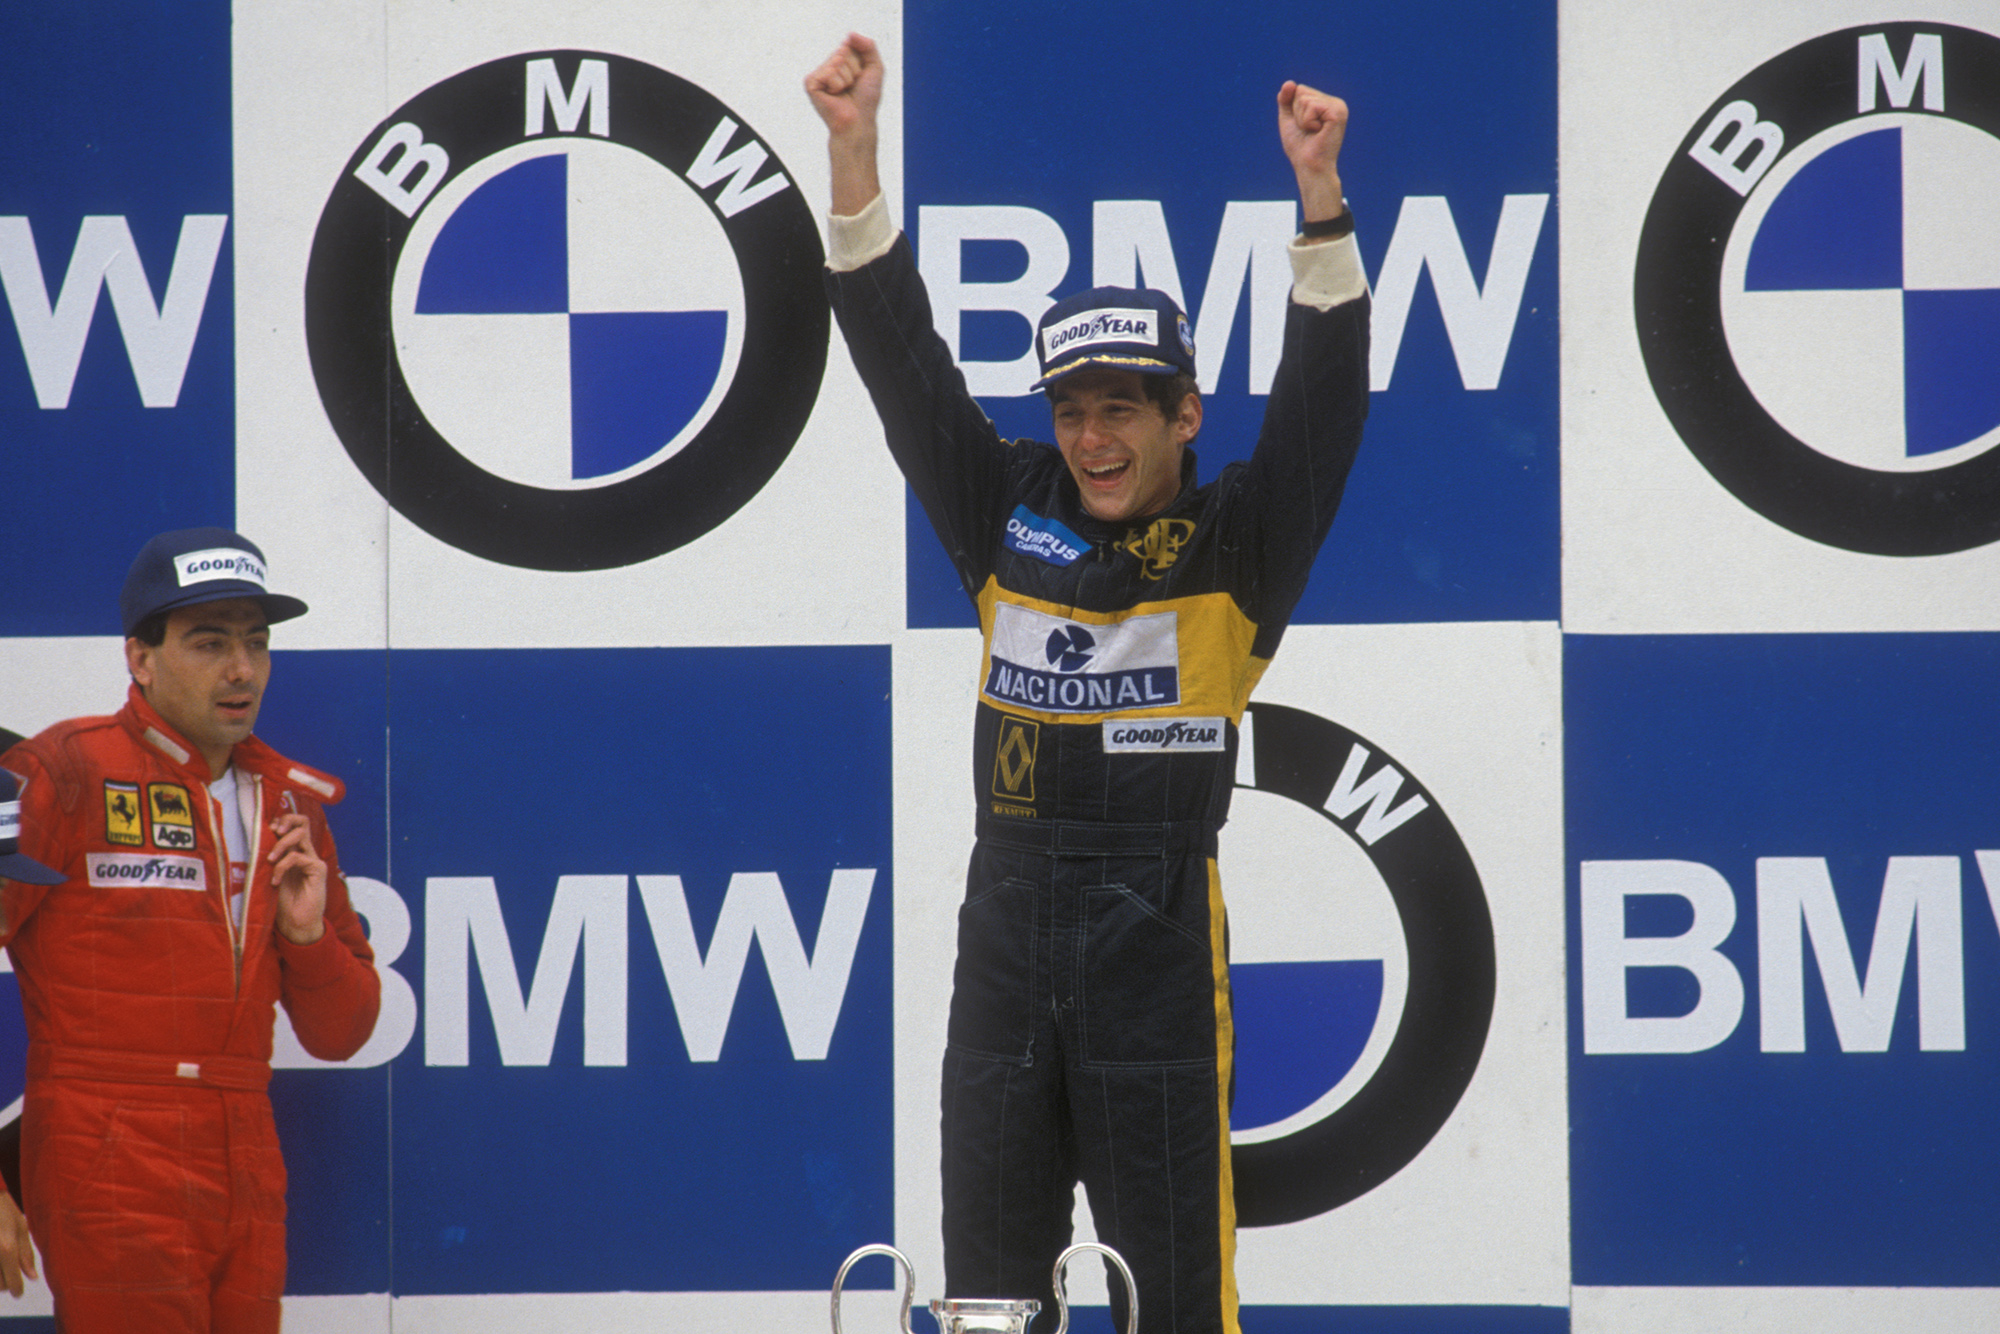 Ayrton Senna celebrates his first race victory in the 1985 Portuguese Grand Prix